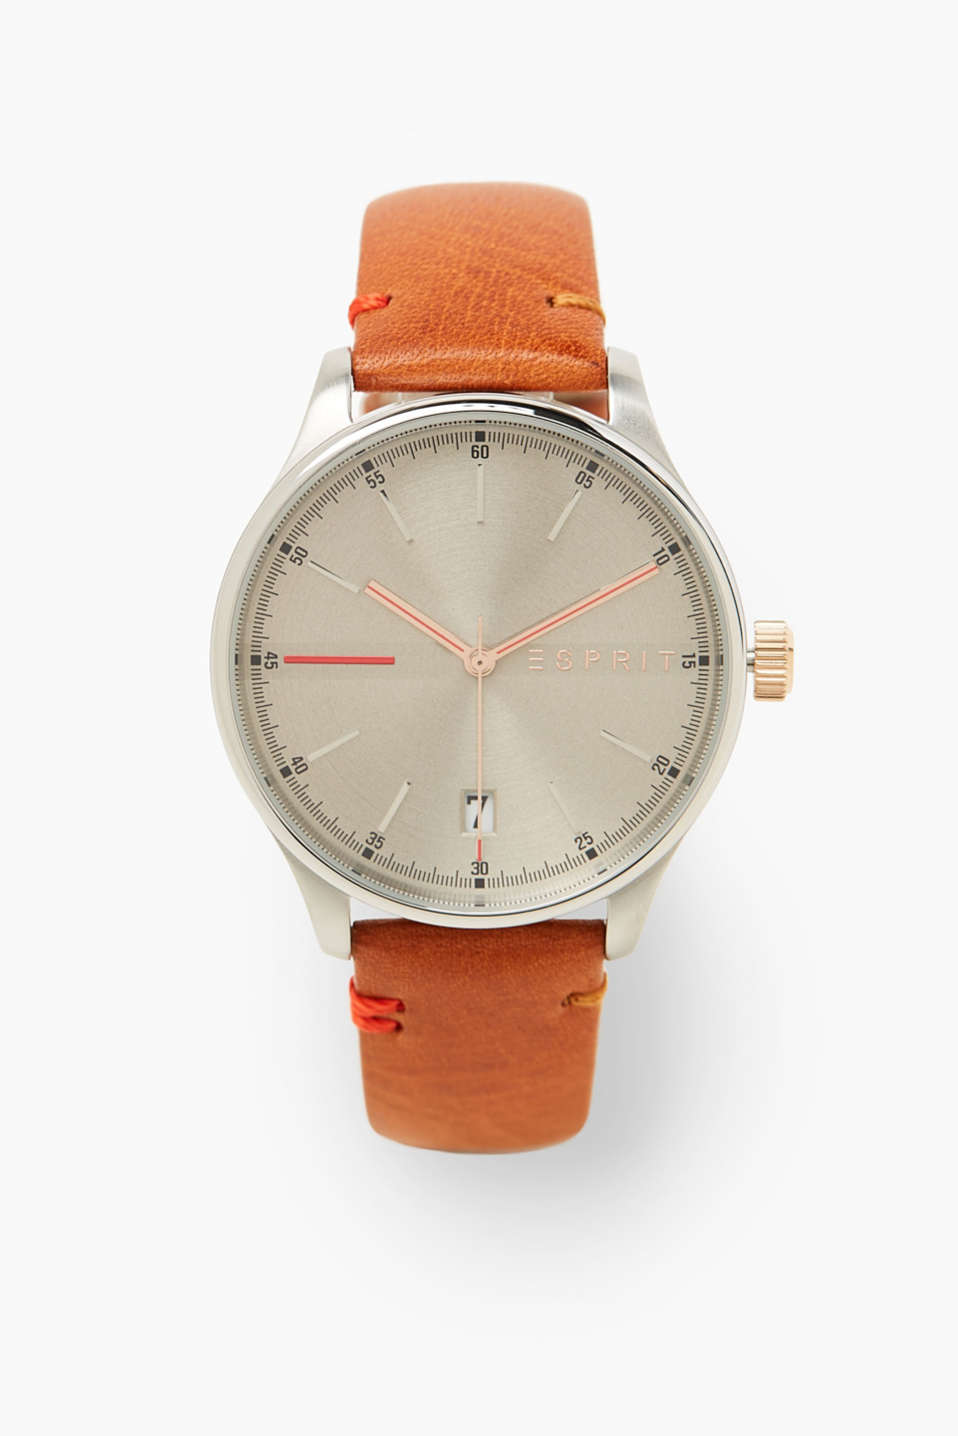 Modern and minimalist! This watch is defined by its minimalist design.